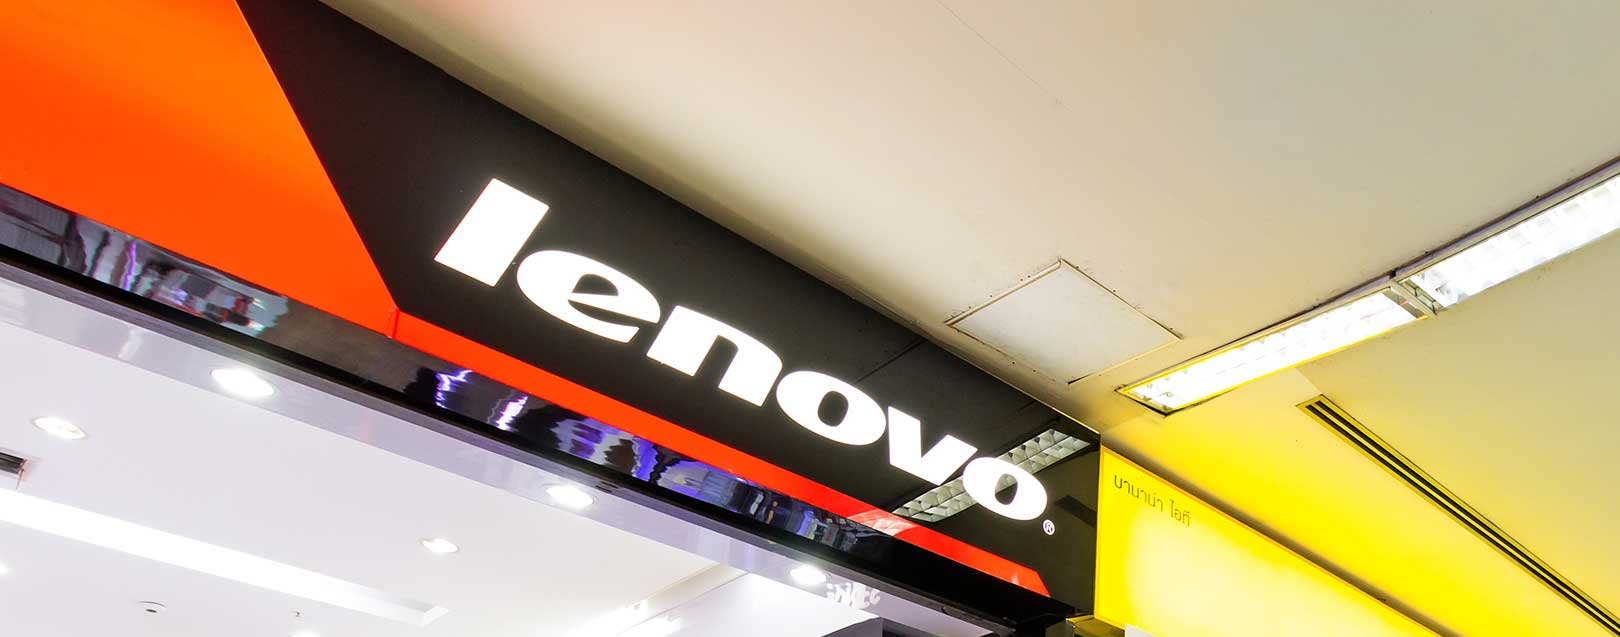 Lenovo eyes India to boost global sales growth